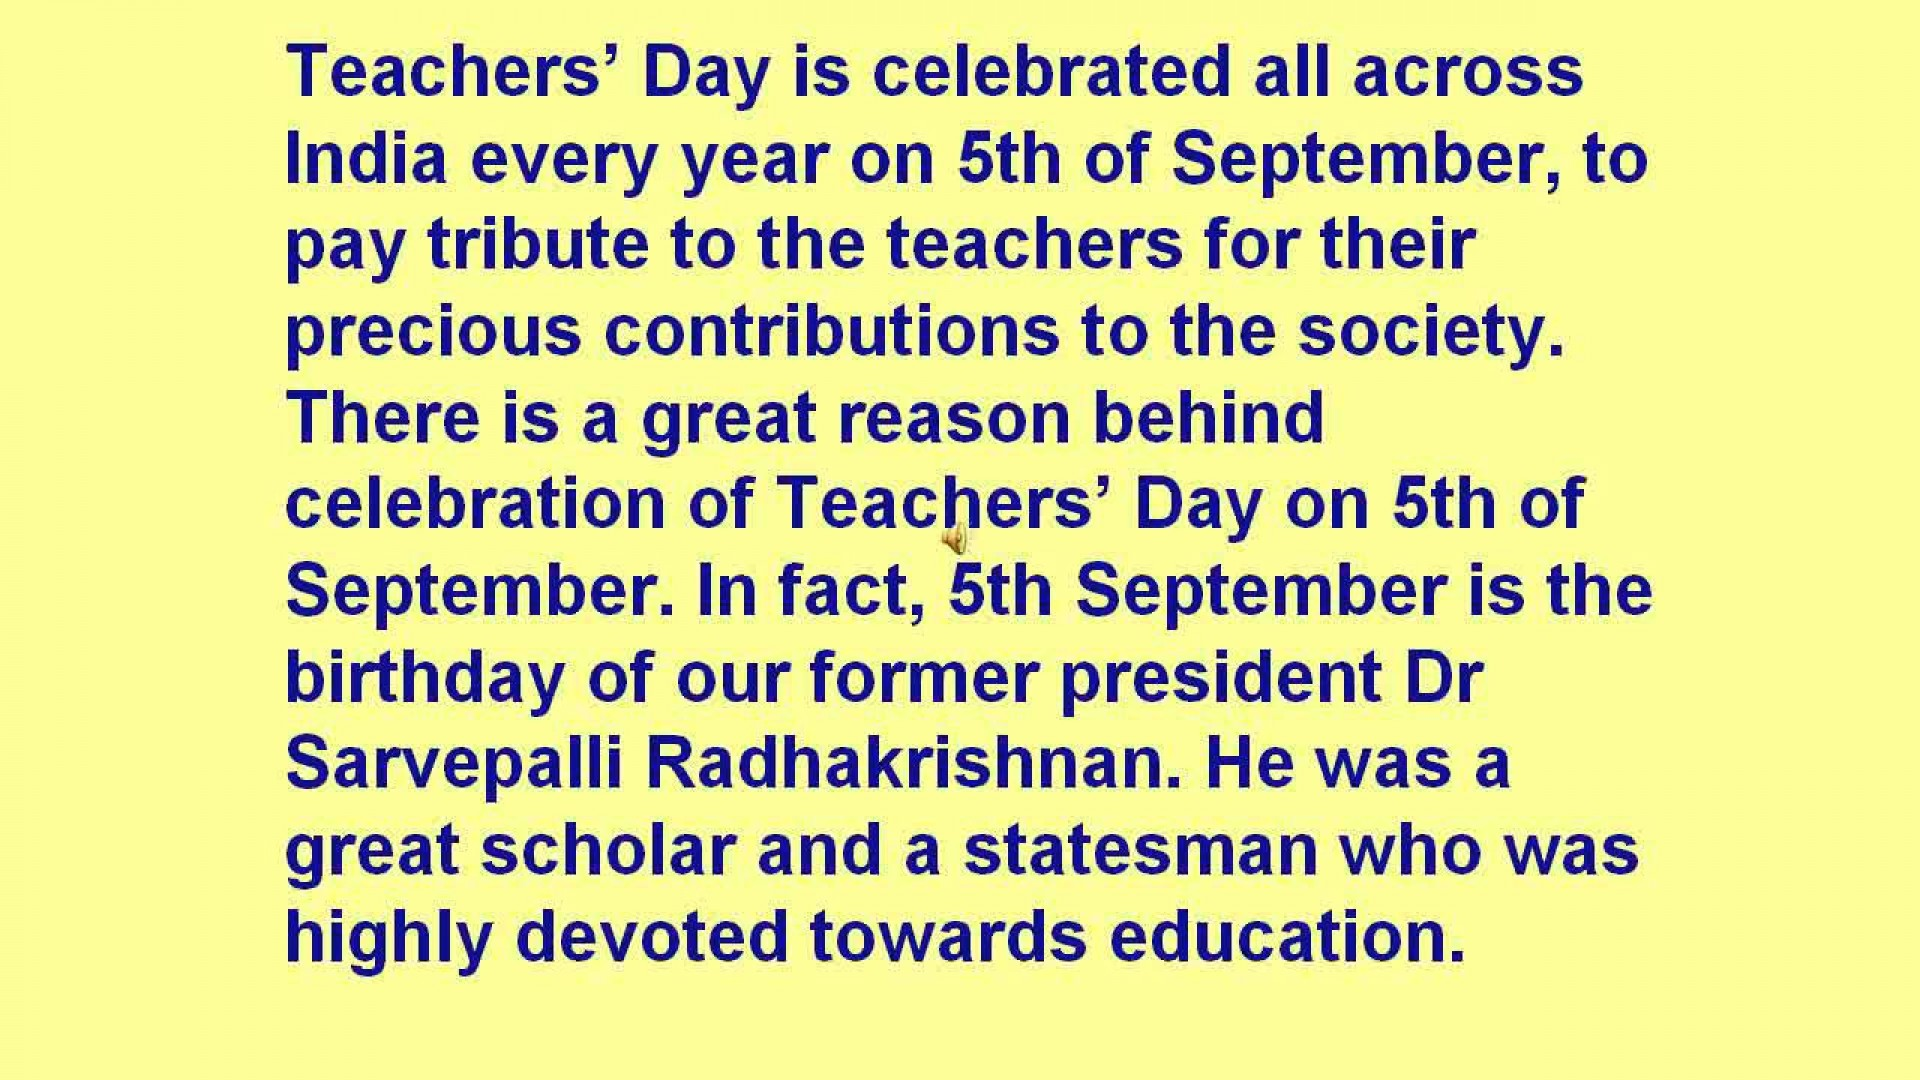 011 Essay On Teachers Day In India Maxresdefault Fascinating 1920